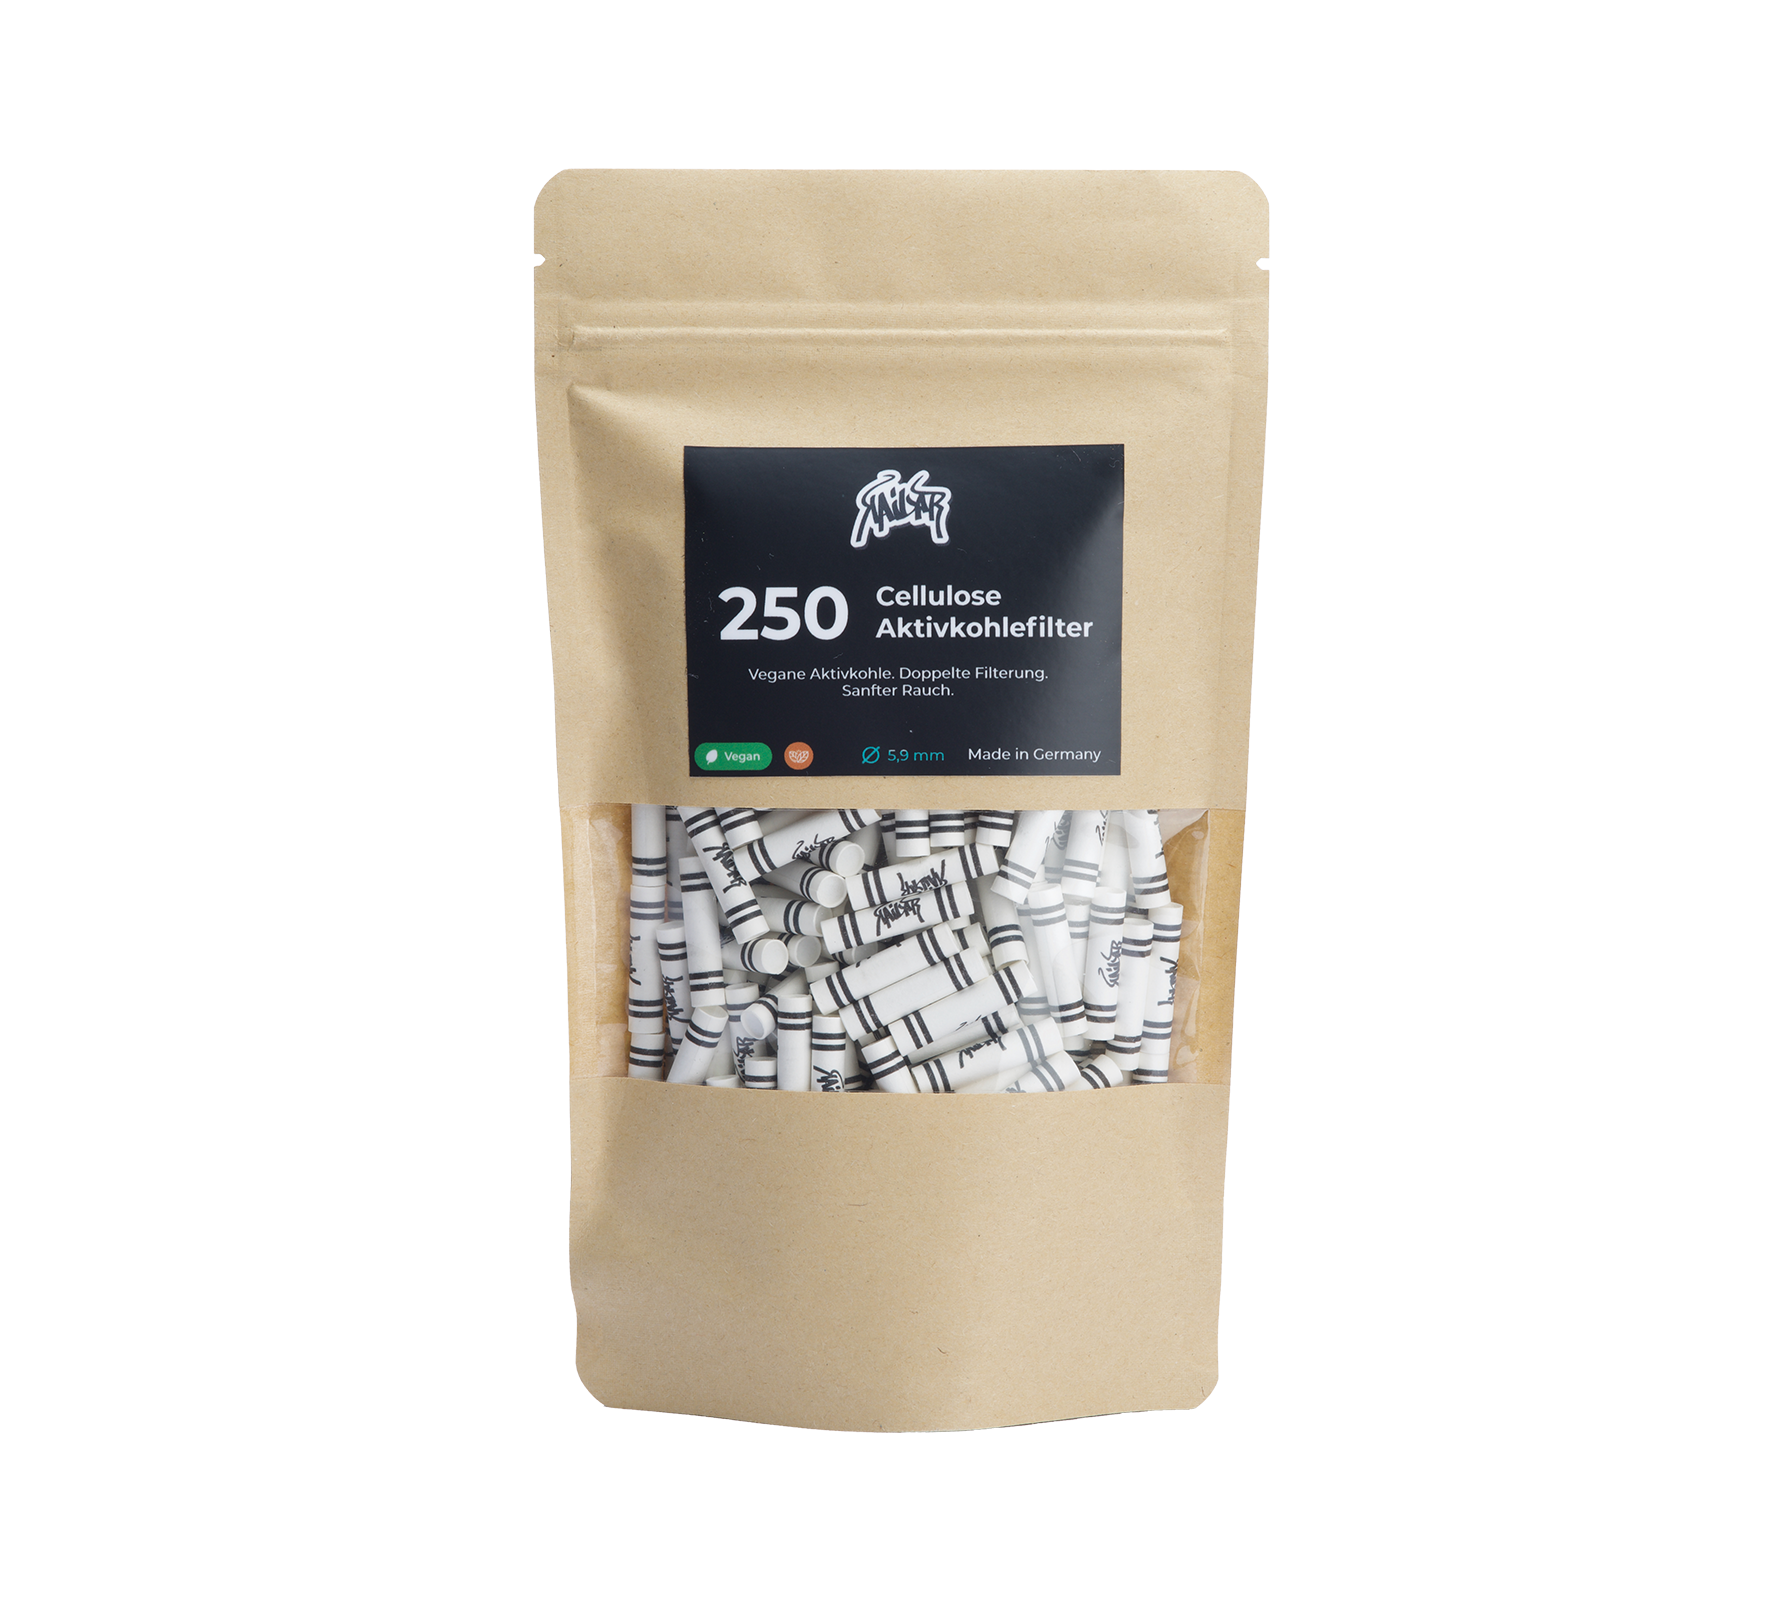 Tom Hemps Product Cellulose Aktivekohlefilter 250 (1)